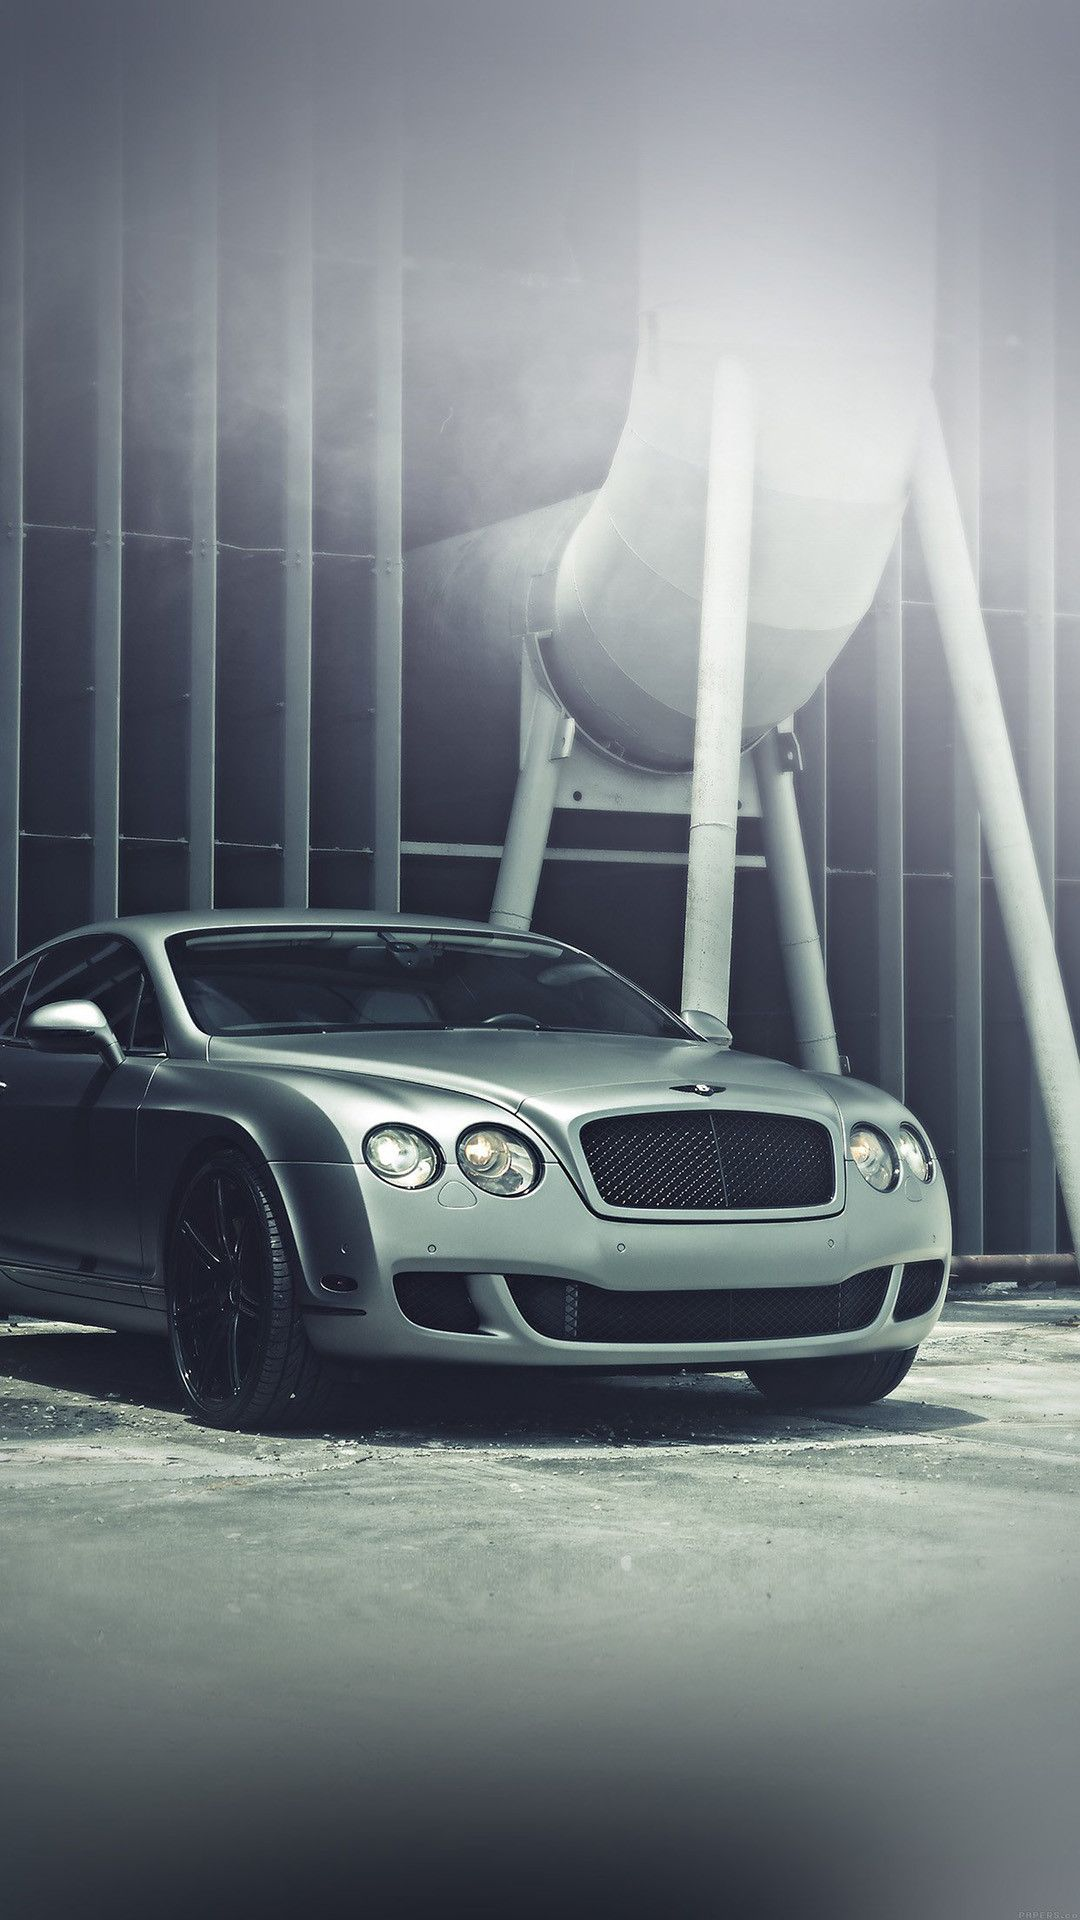 1080x1920 Car Iphone 6 Plus Wallpaper Bentley Motors Car Car